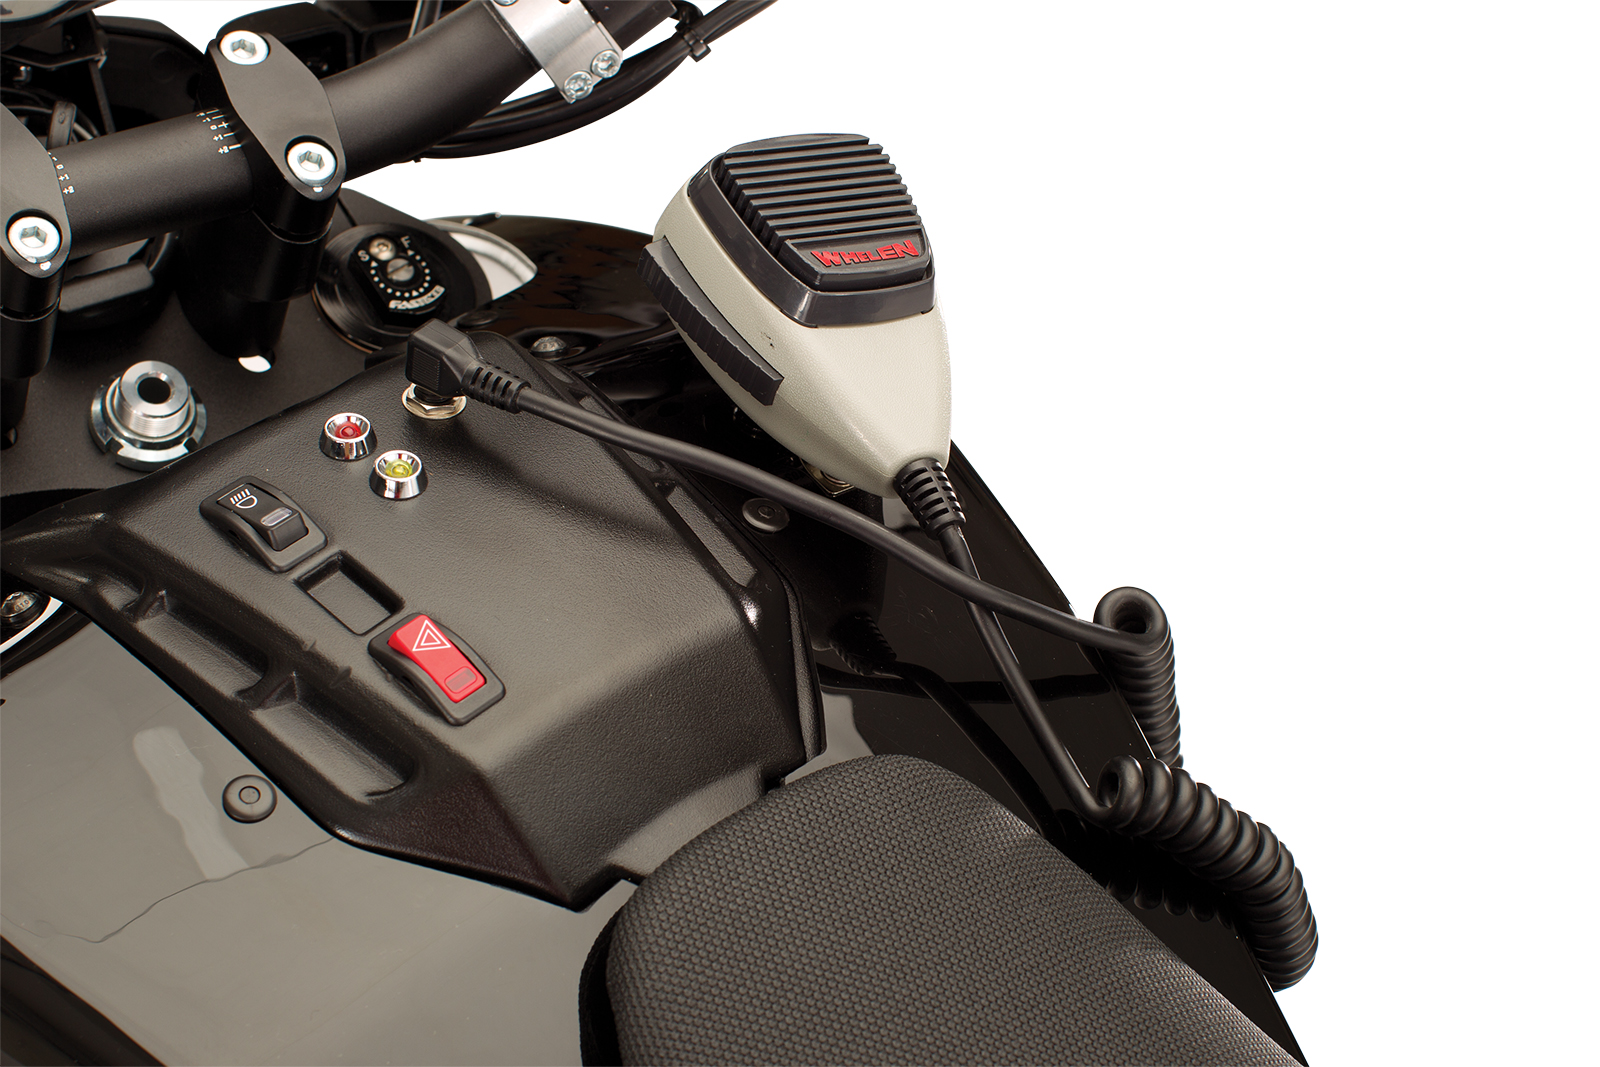 2012 Zero DS Police Motorcycles: Whelen LINZ 6 forward facing LED